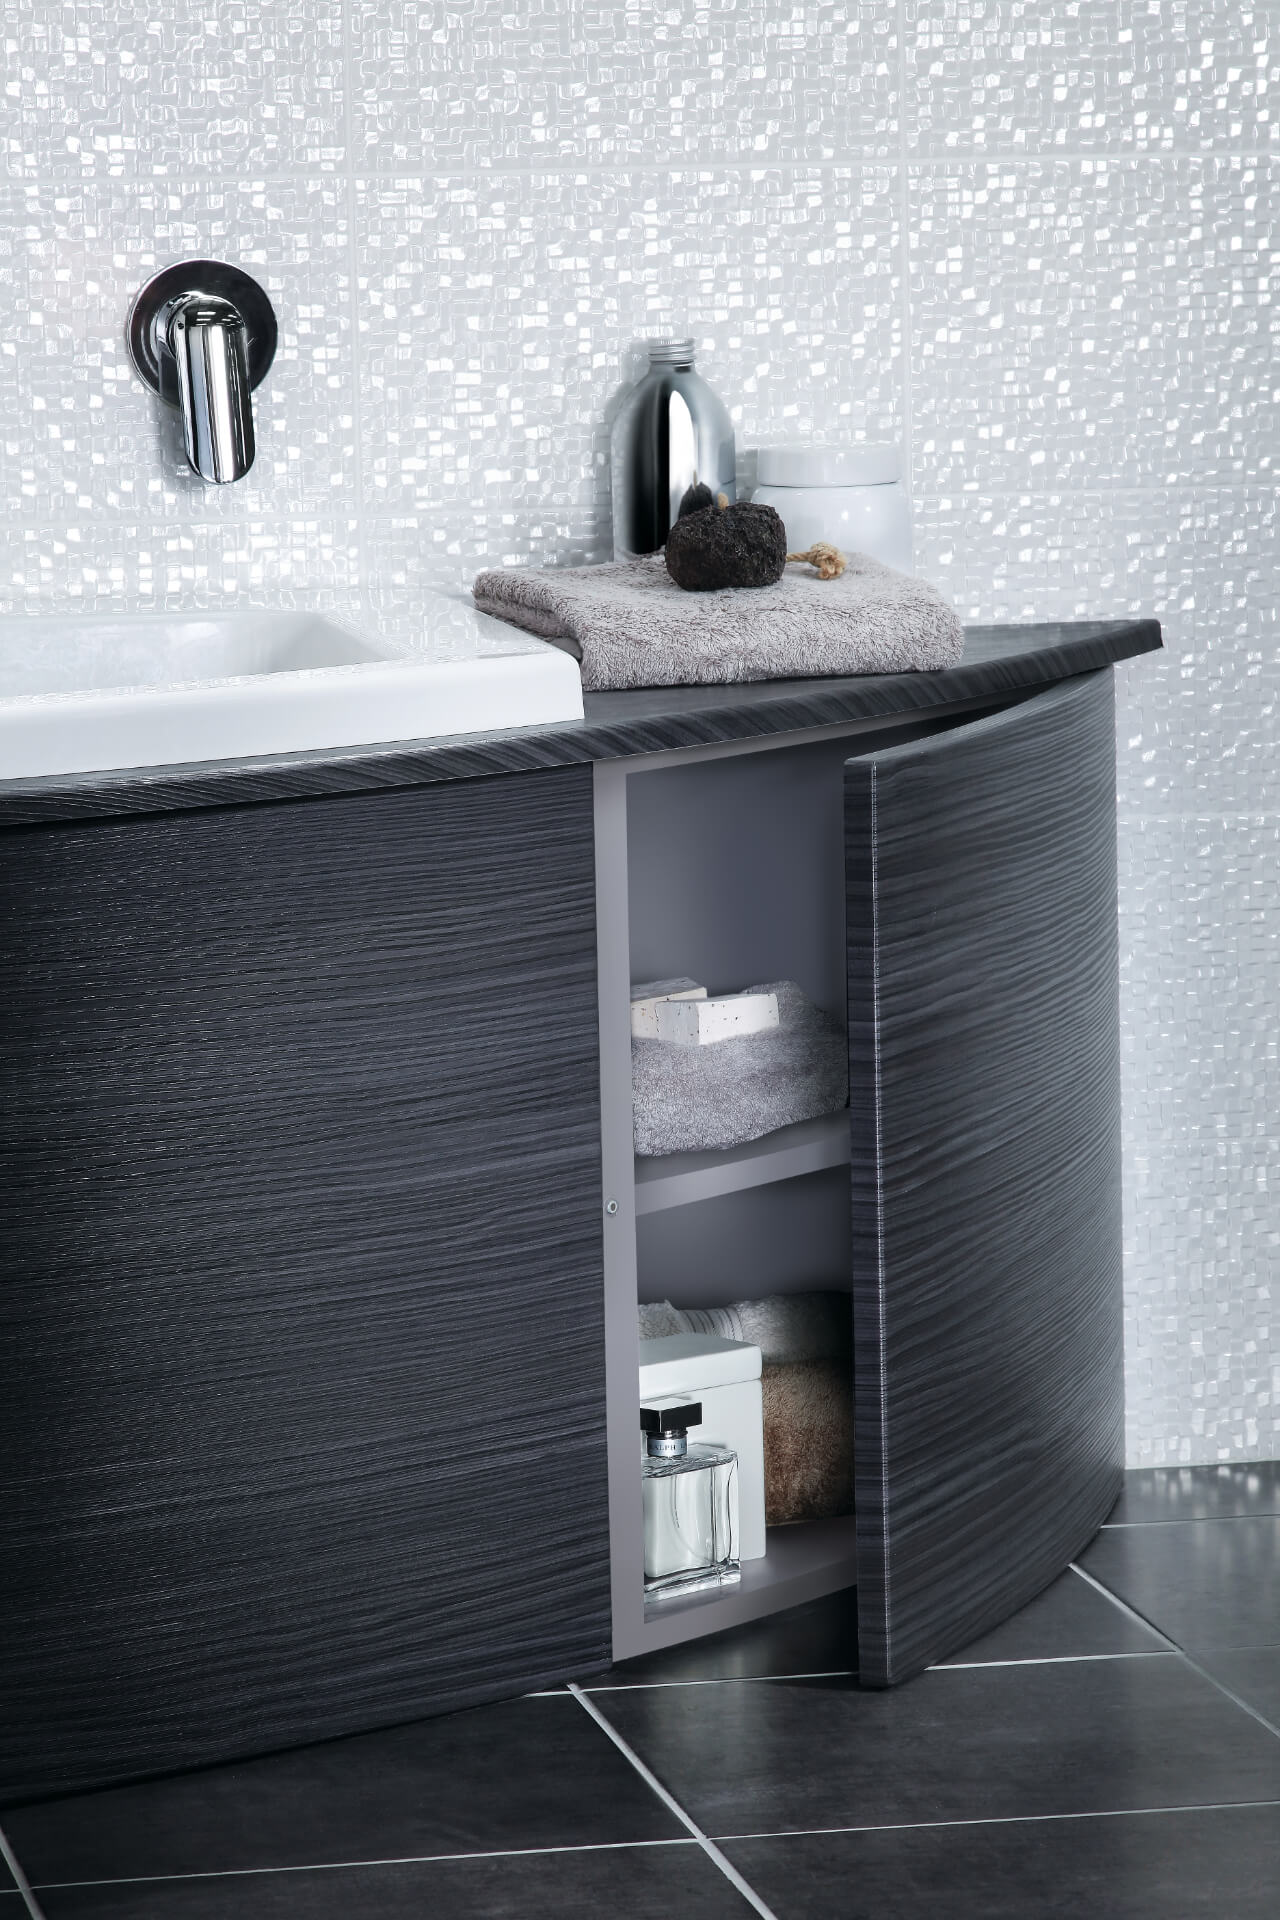 Utopia Bathroom Symmetry Black Cabinet